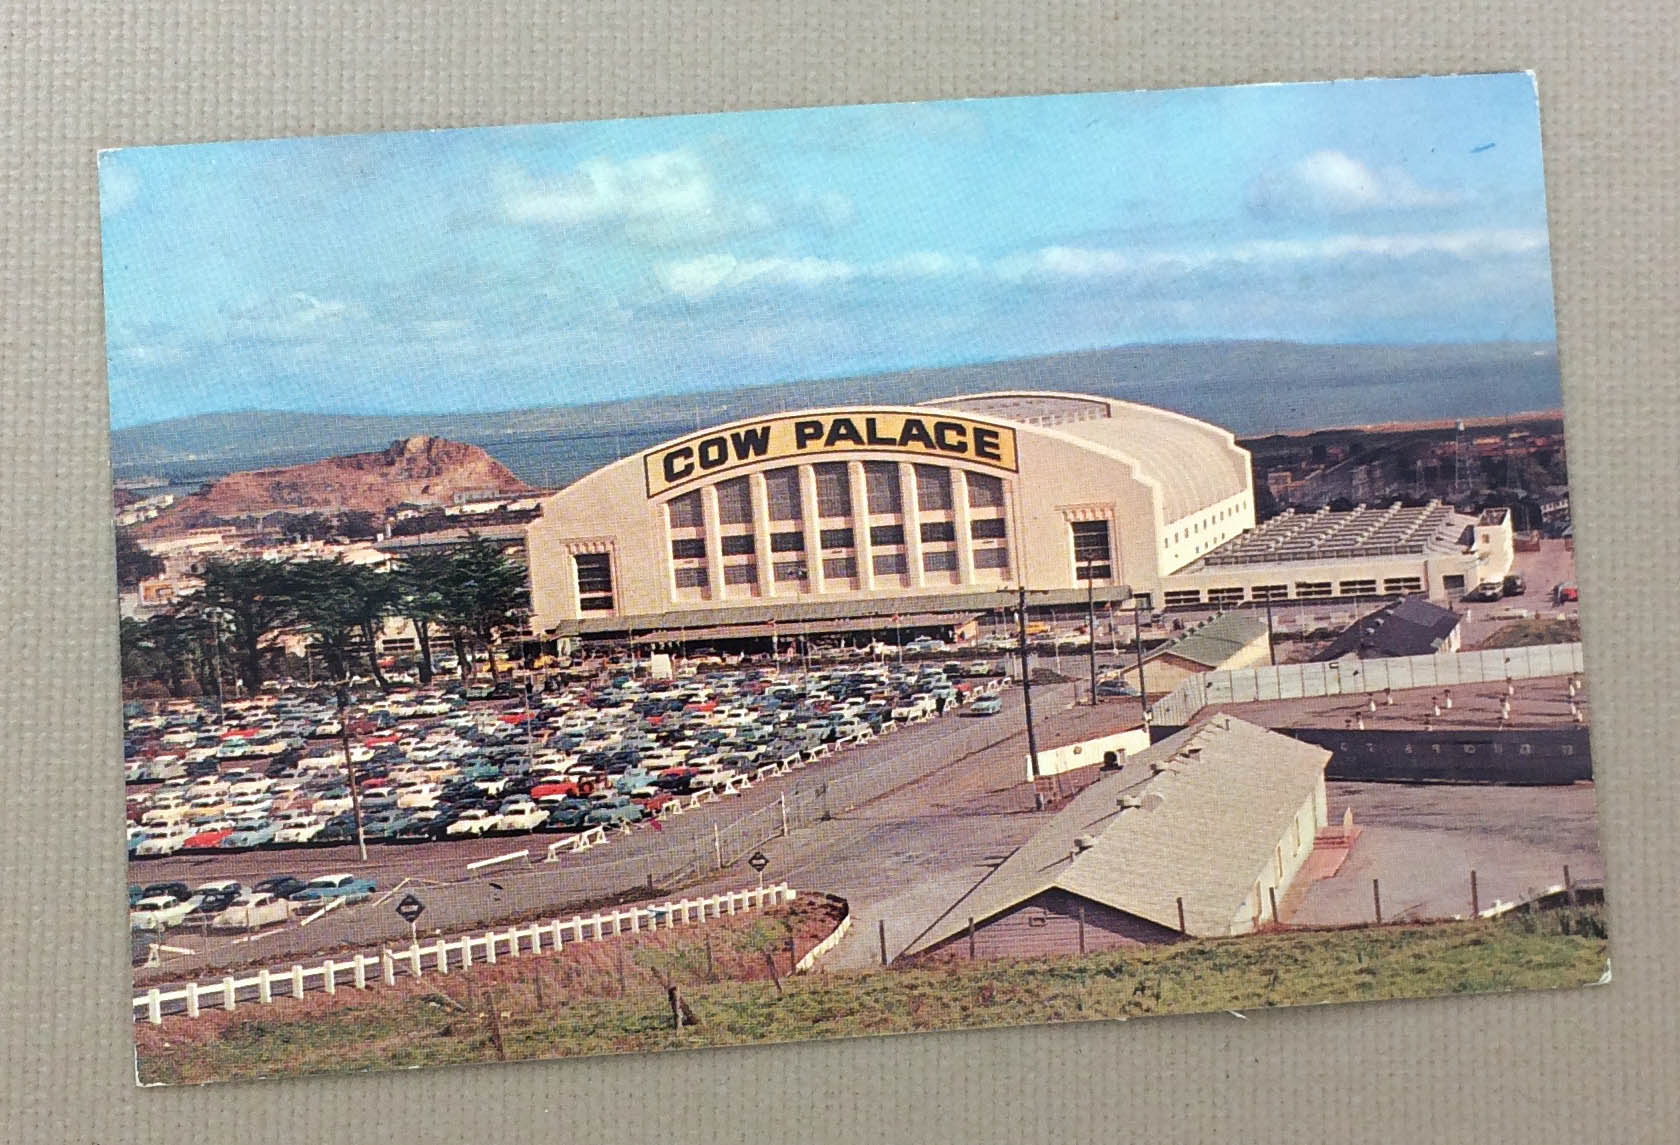 The Cow Palace